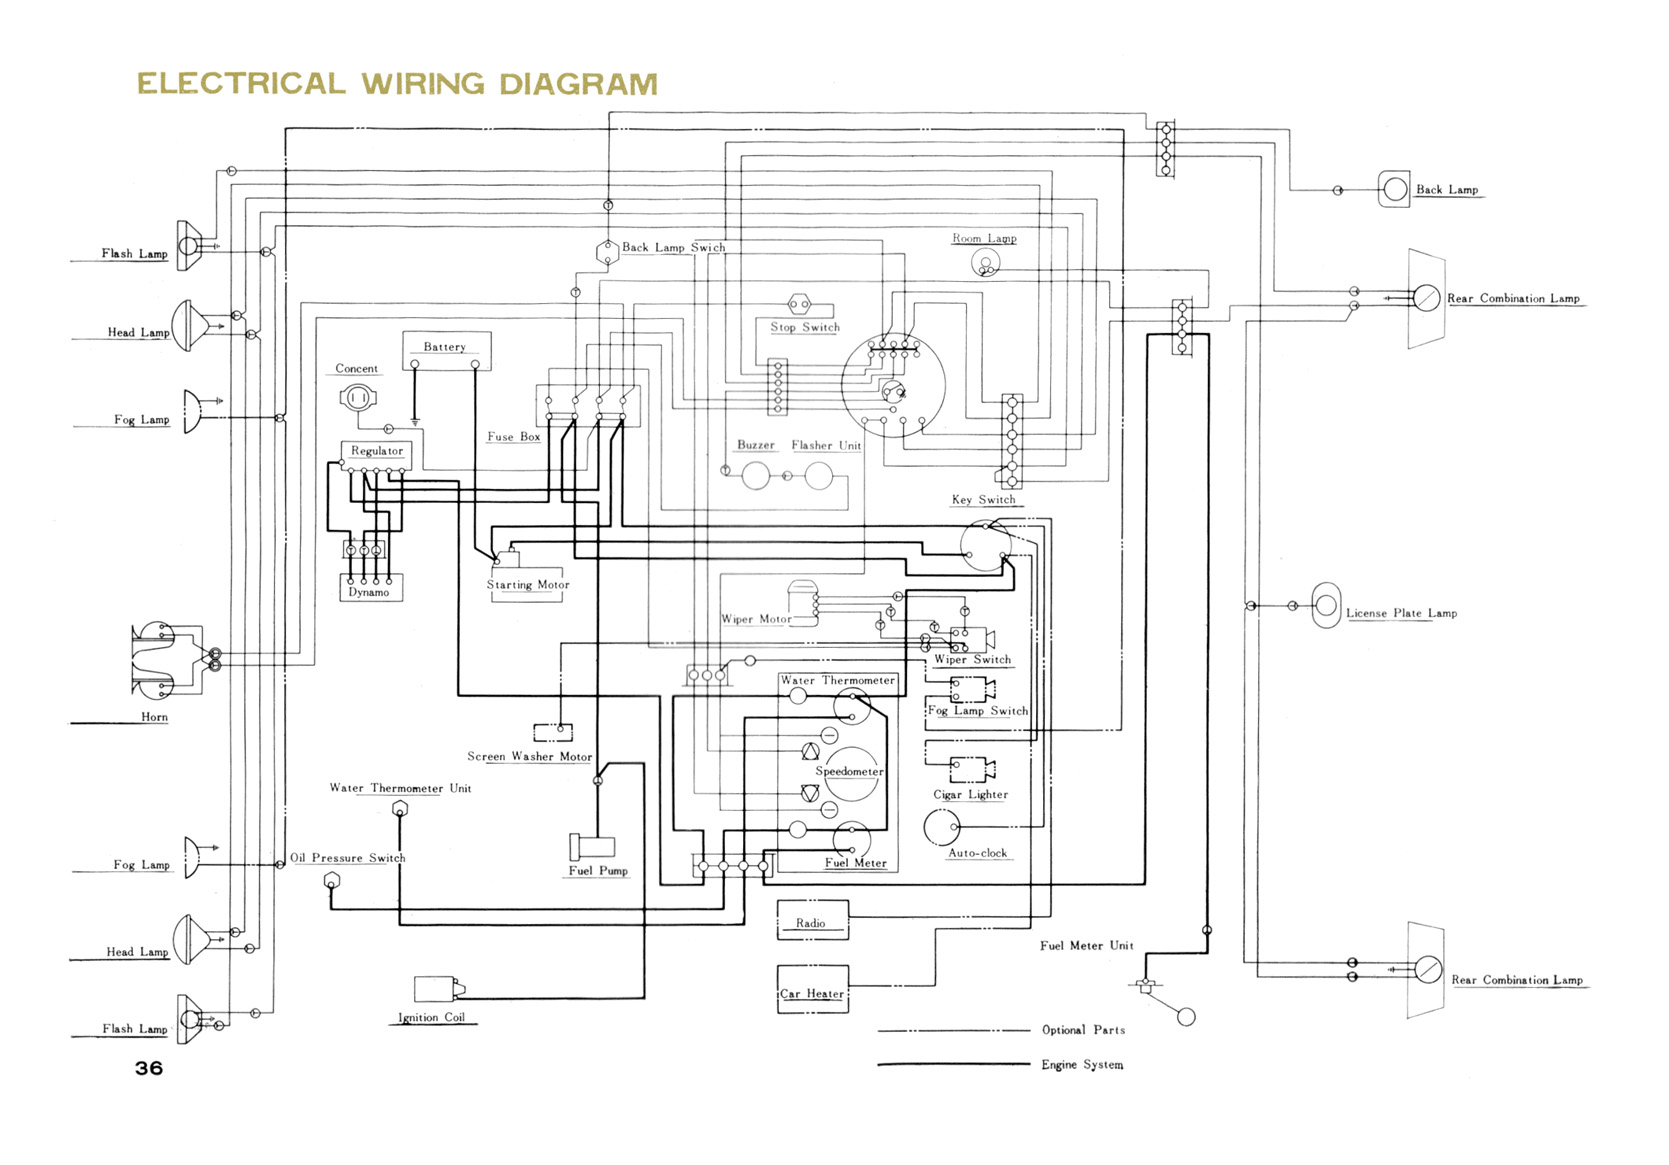 1991 mazda b2600i engine electrical diagram 1991 mazda